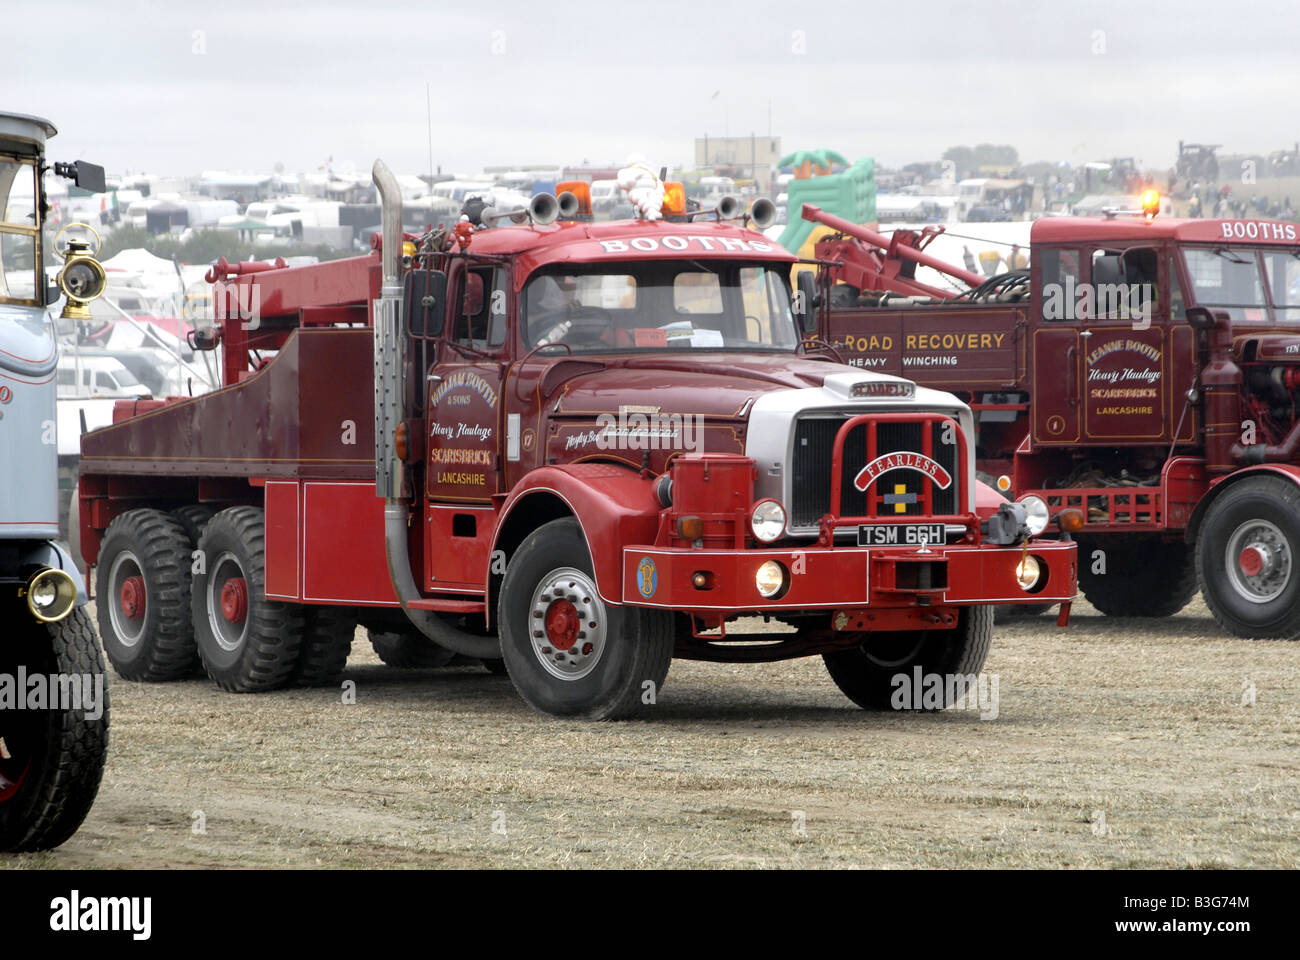 Scammell heavy haulage tractor in show arena - Stock Image